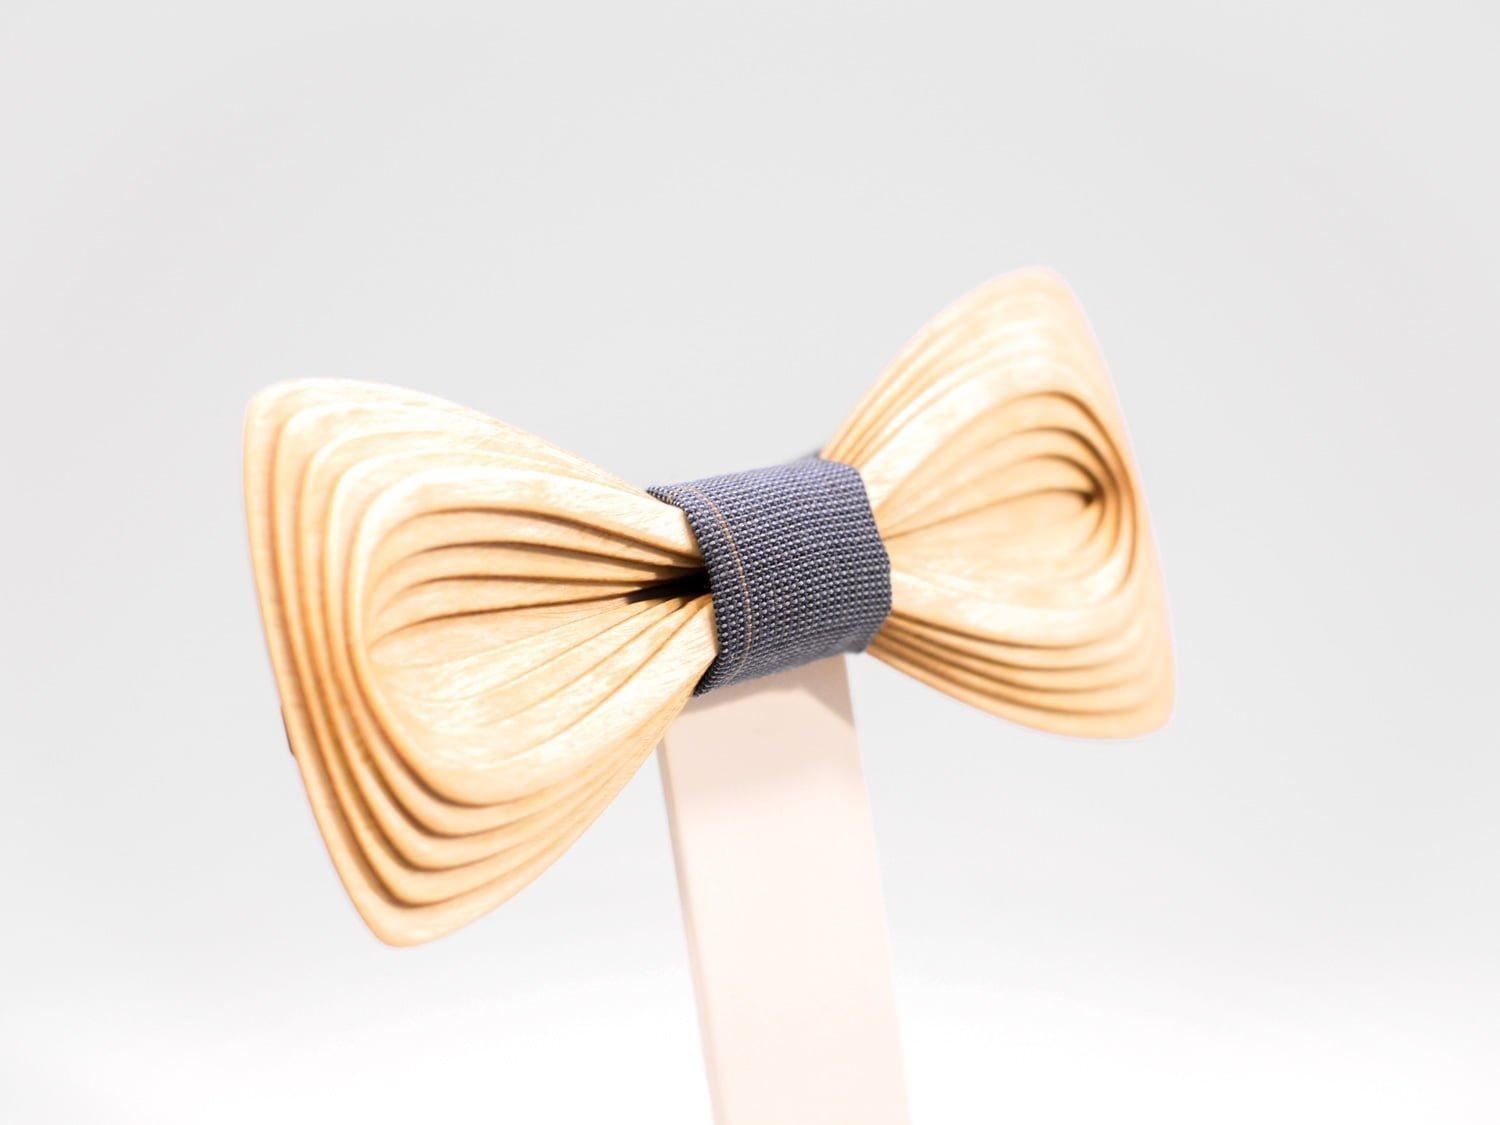 SÖÖR Antero neckwear in birch. A unique wooden bowtie for men